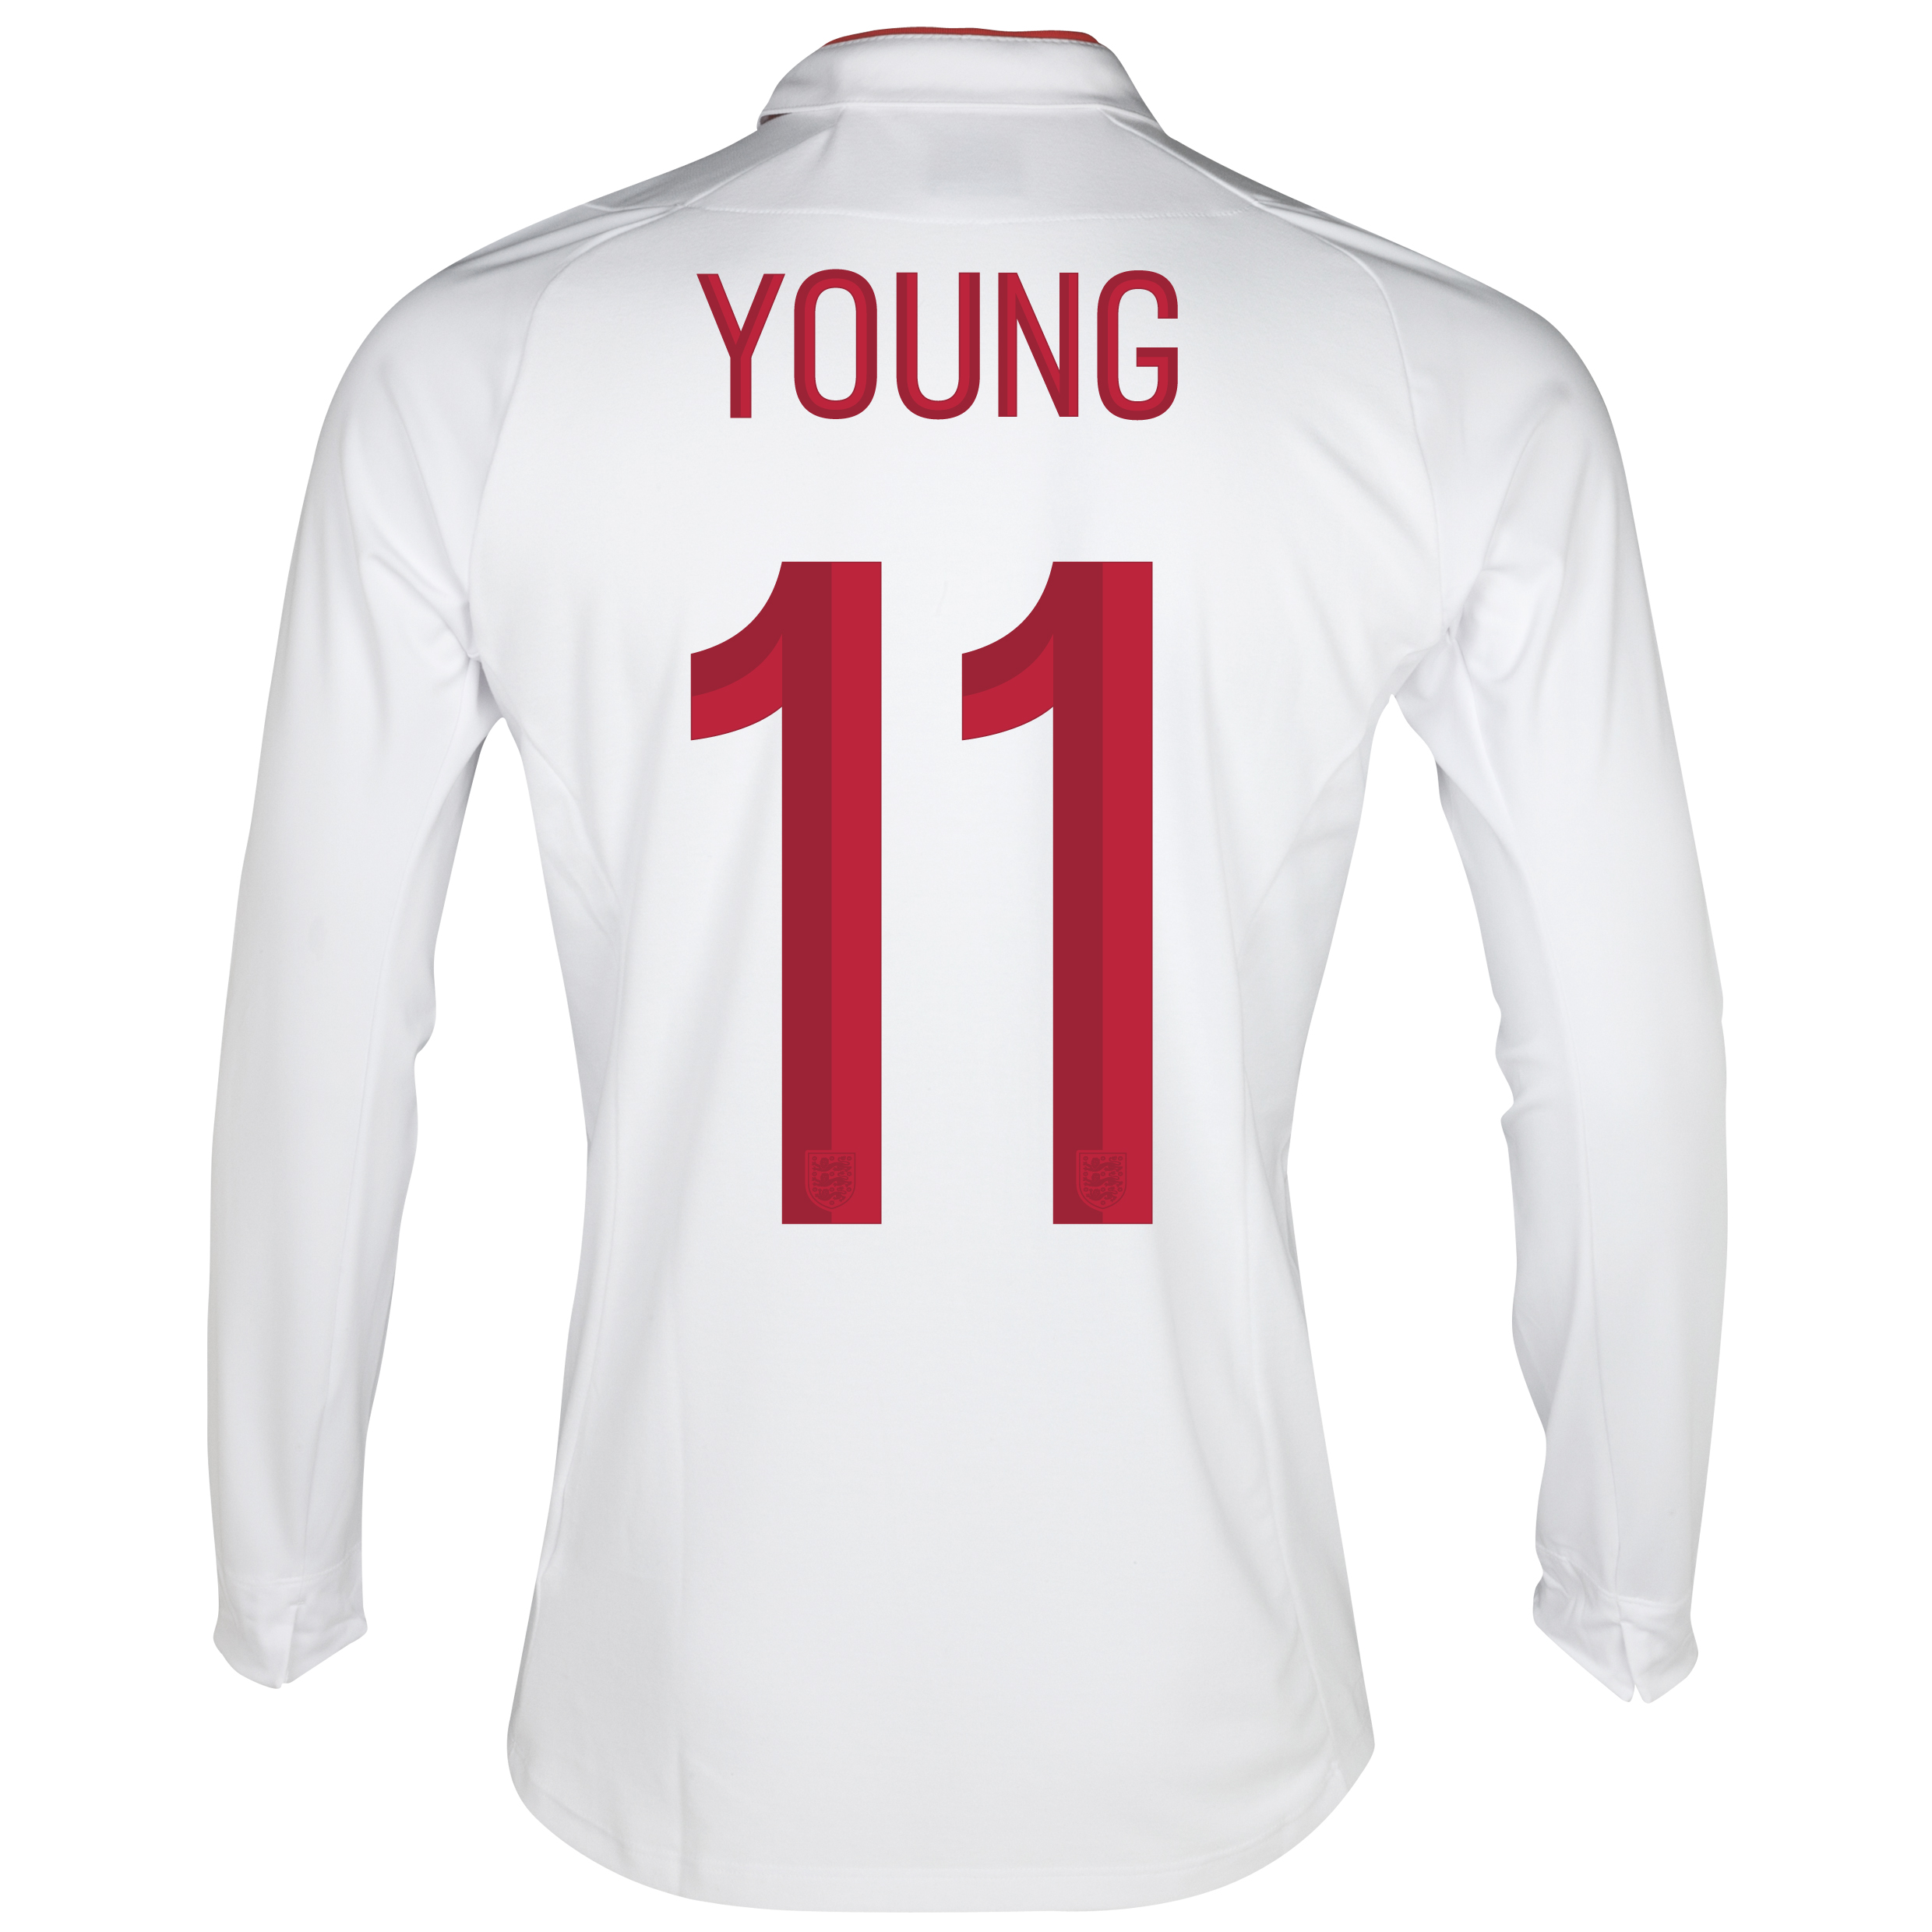 England Home Shirt 2012/13 - Long Sleeve - Boys with Young 11 printing